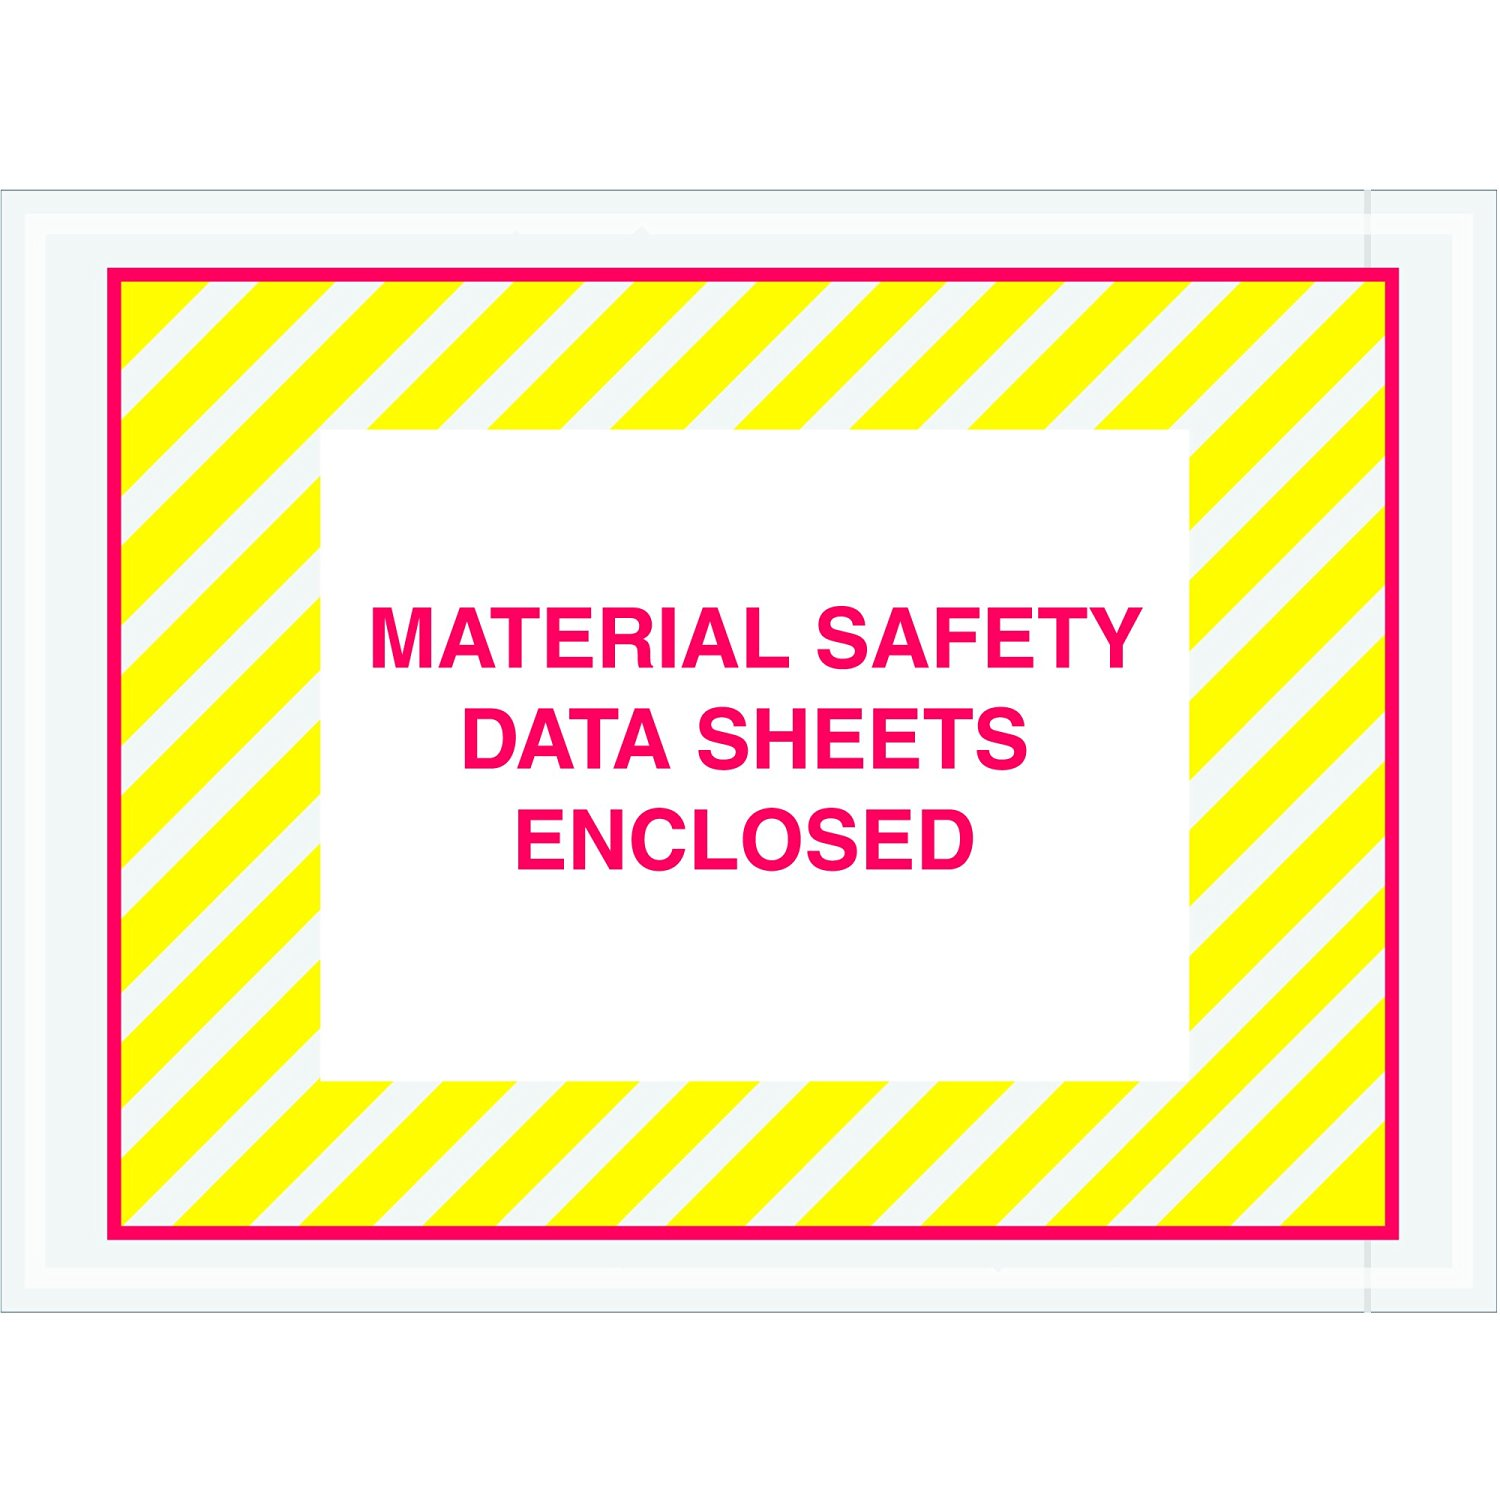 """Tape Logic TLPL423 Material Safety Data Sheets Enclosed Envelopes, 4 1/2"""" x 6"""", Red/Yellow (Pack of 1000)"""